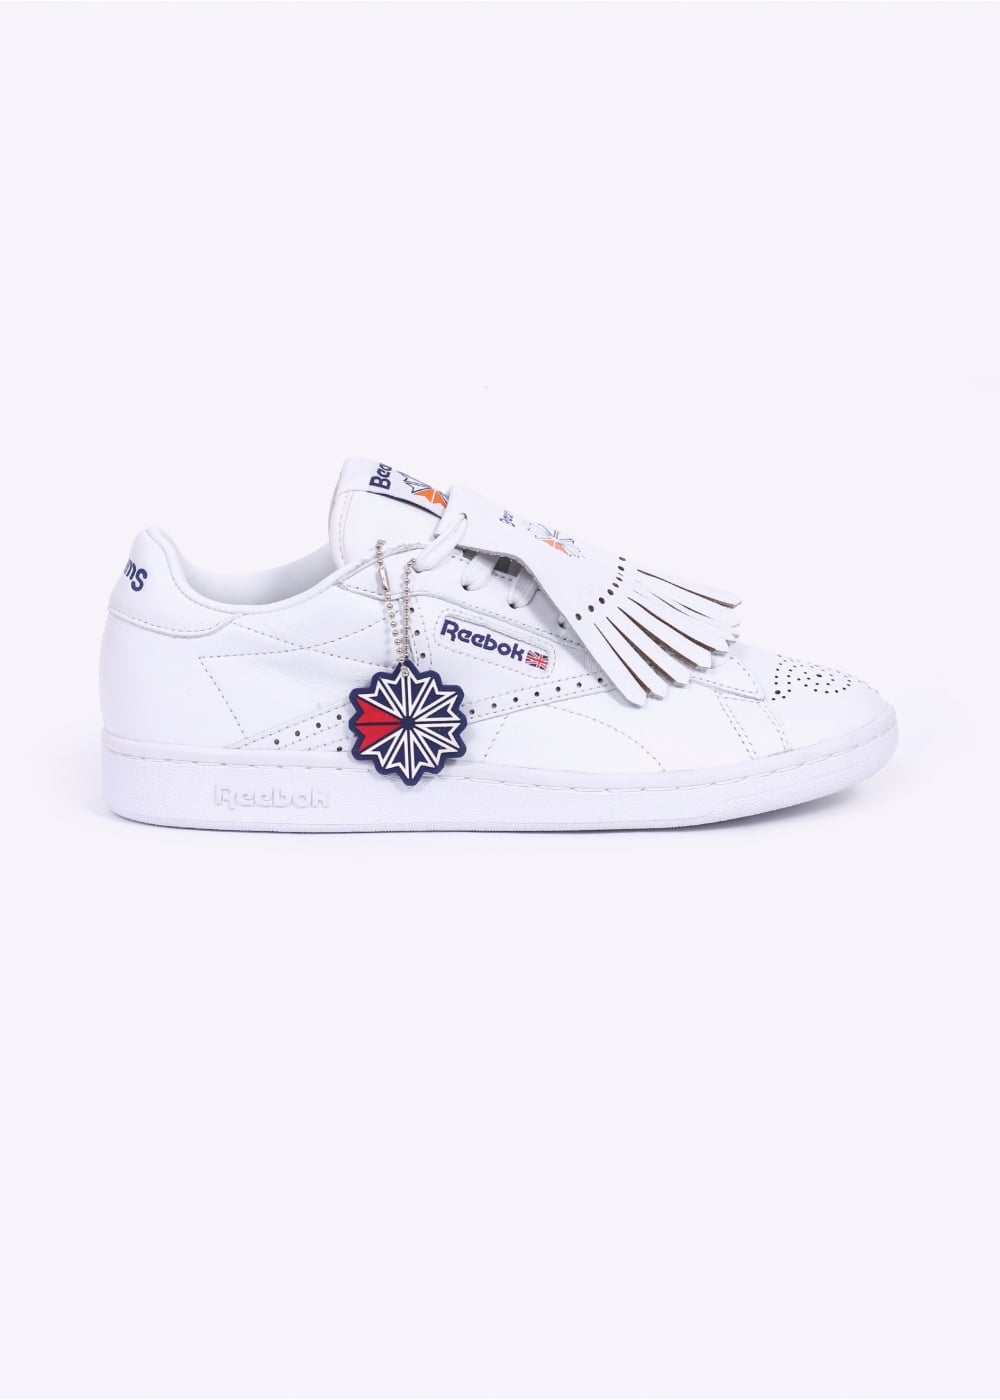 Reebok x Beams NPC UK Trainers - White   Phantom Blue   Red aa952c01ab